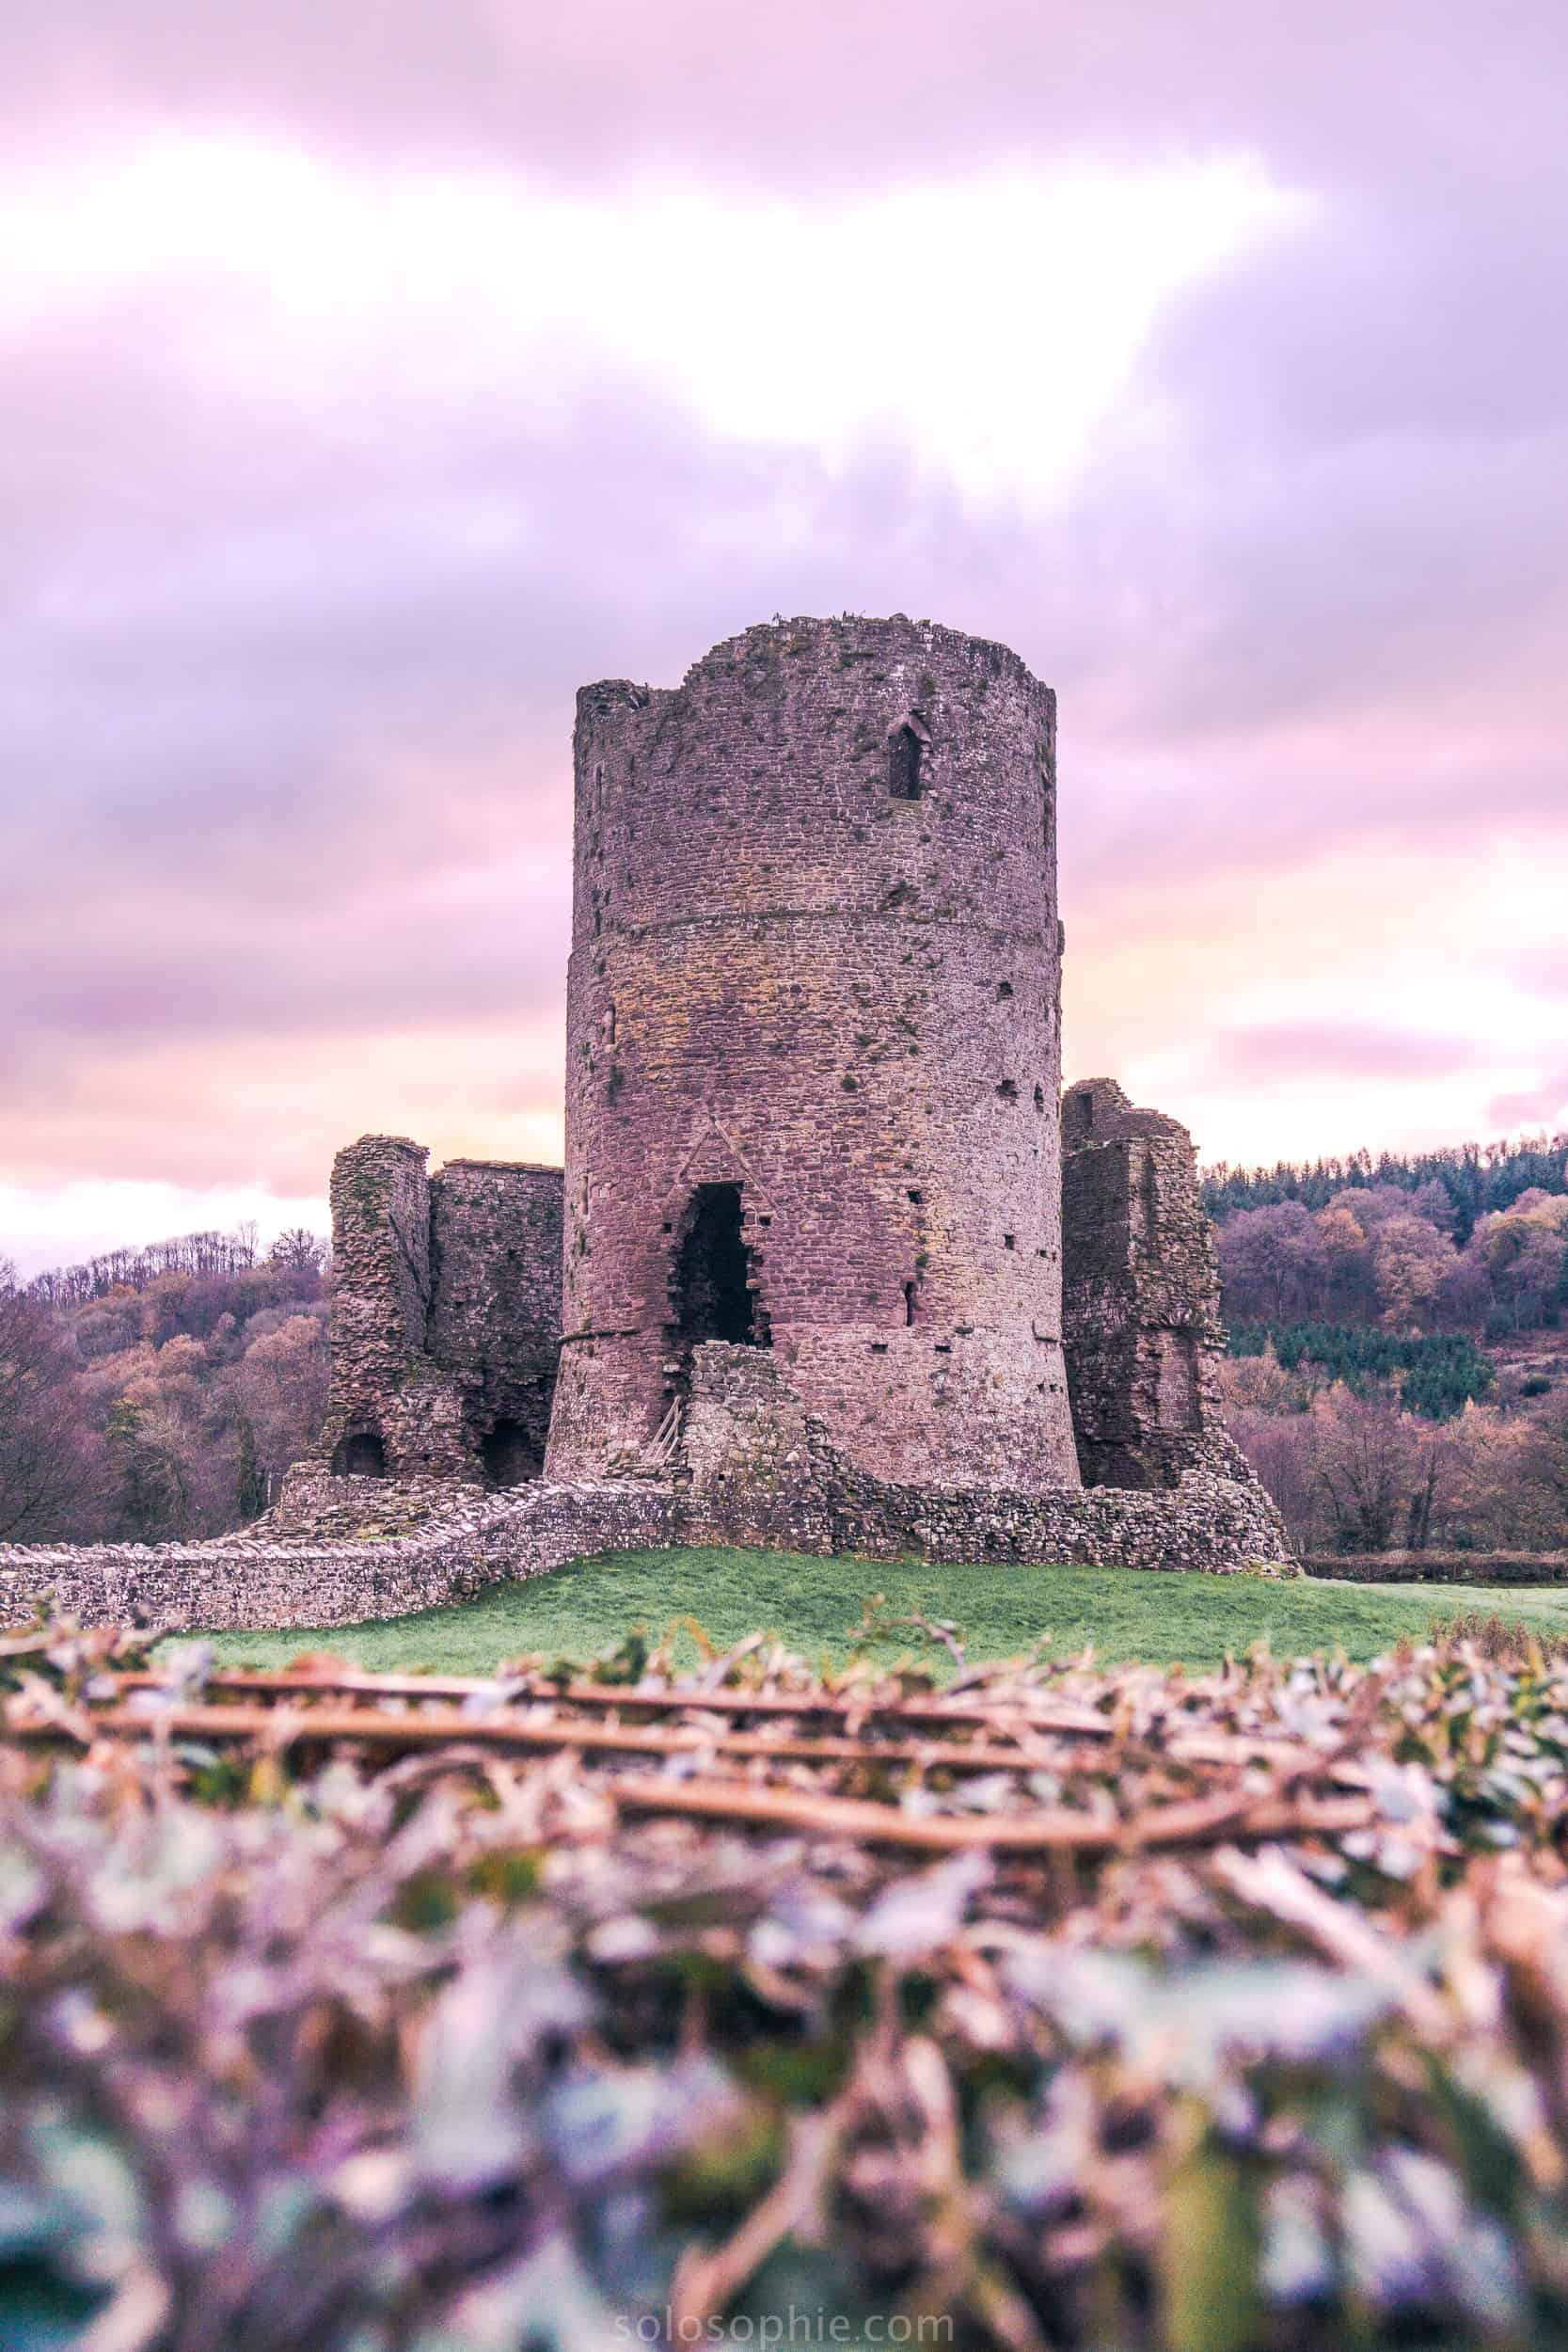 How to spend three days in England and Wales: a 72 hour road trip around gems of South West England and Southern Wales: Brecon Beacons, Wells, Tretower, Castles, Hay-on-Wye etc.